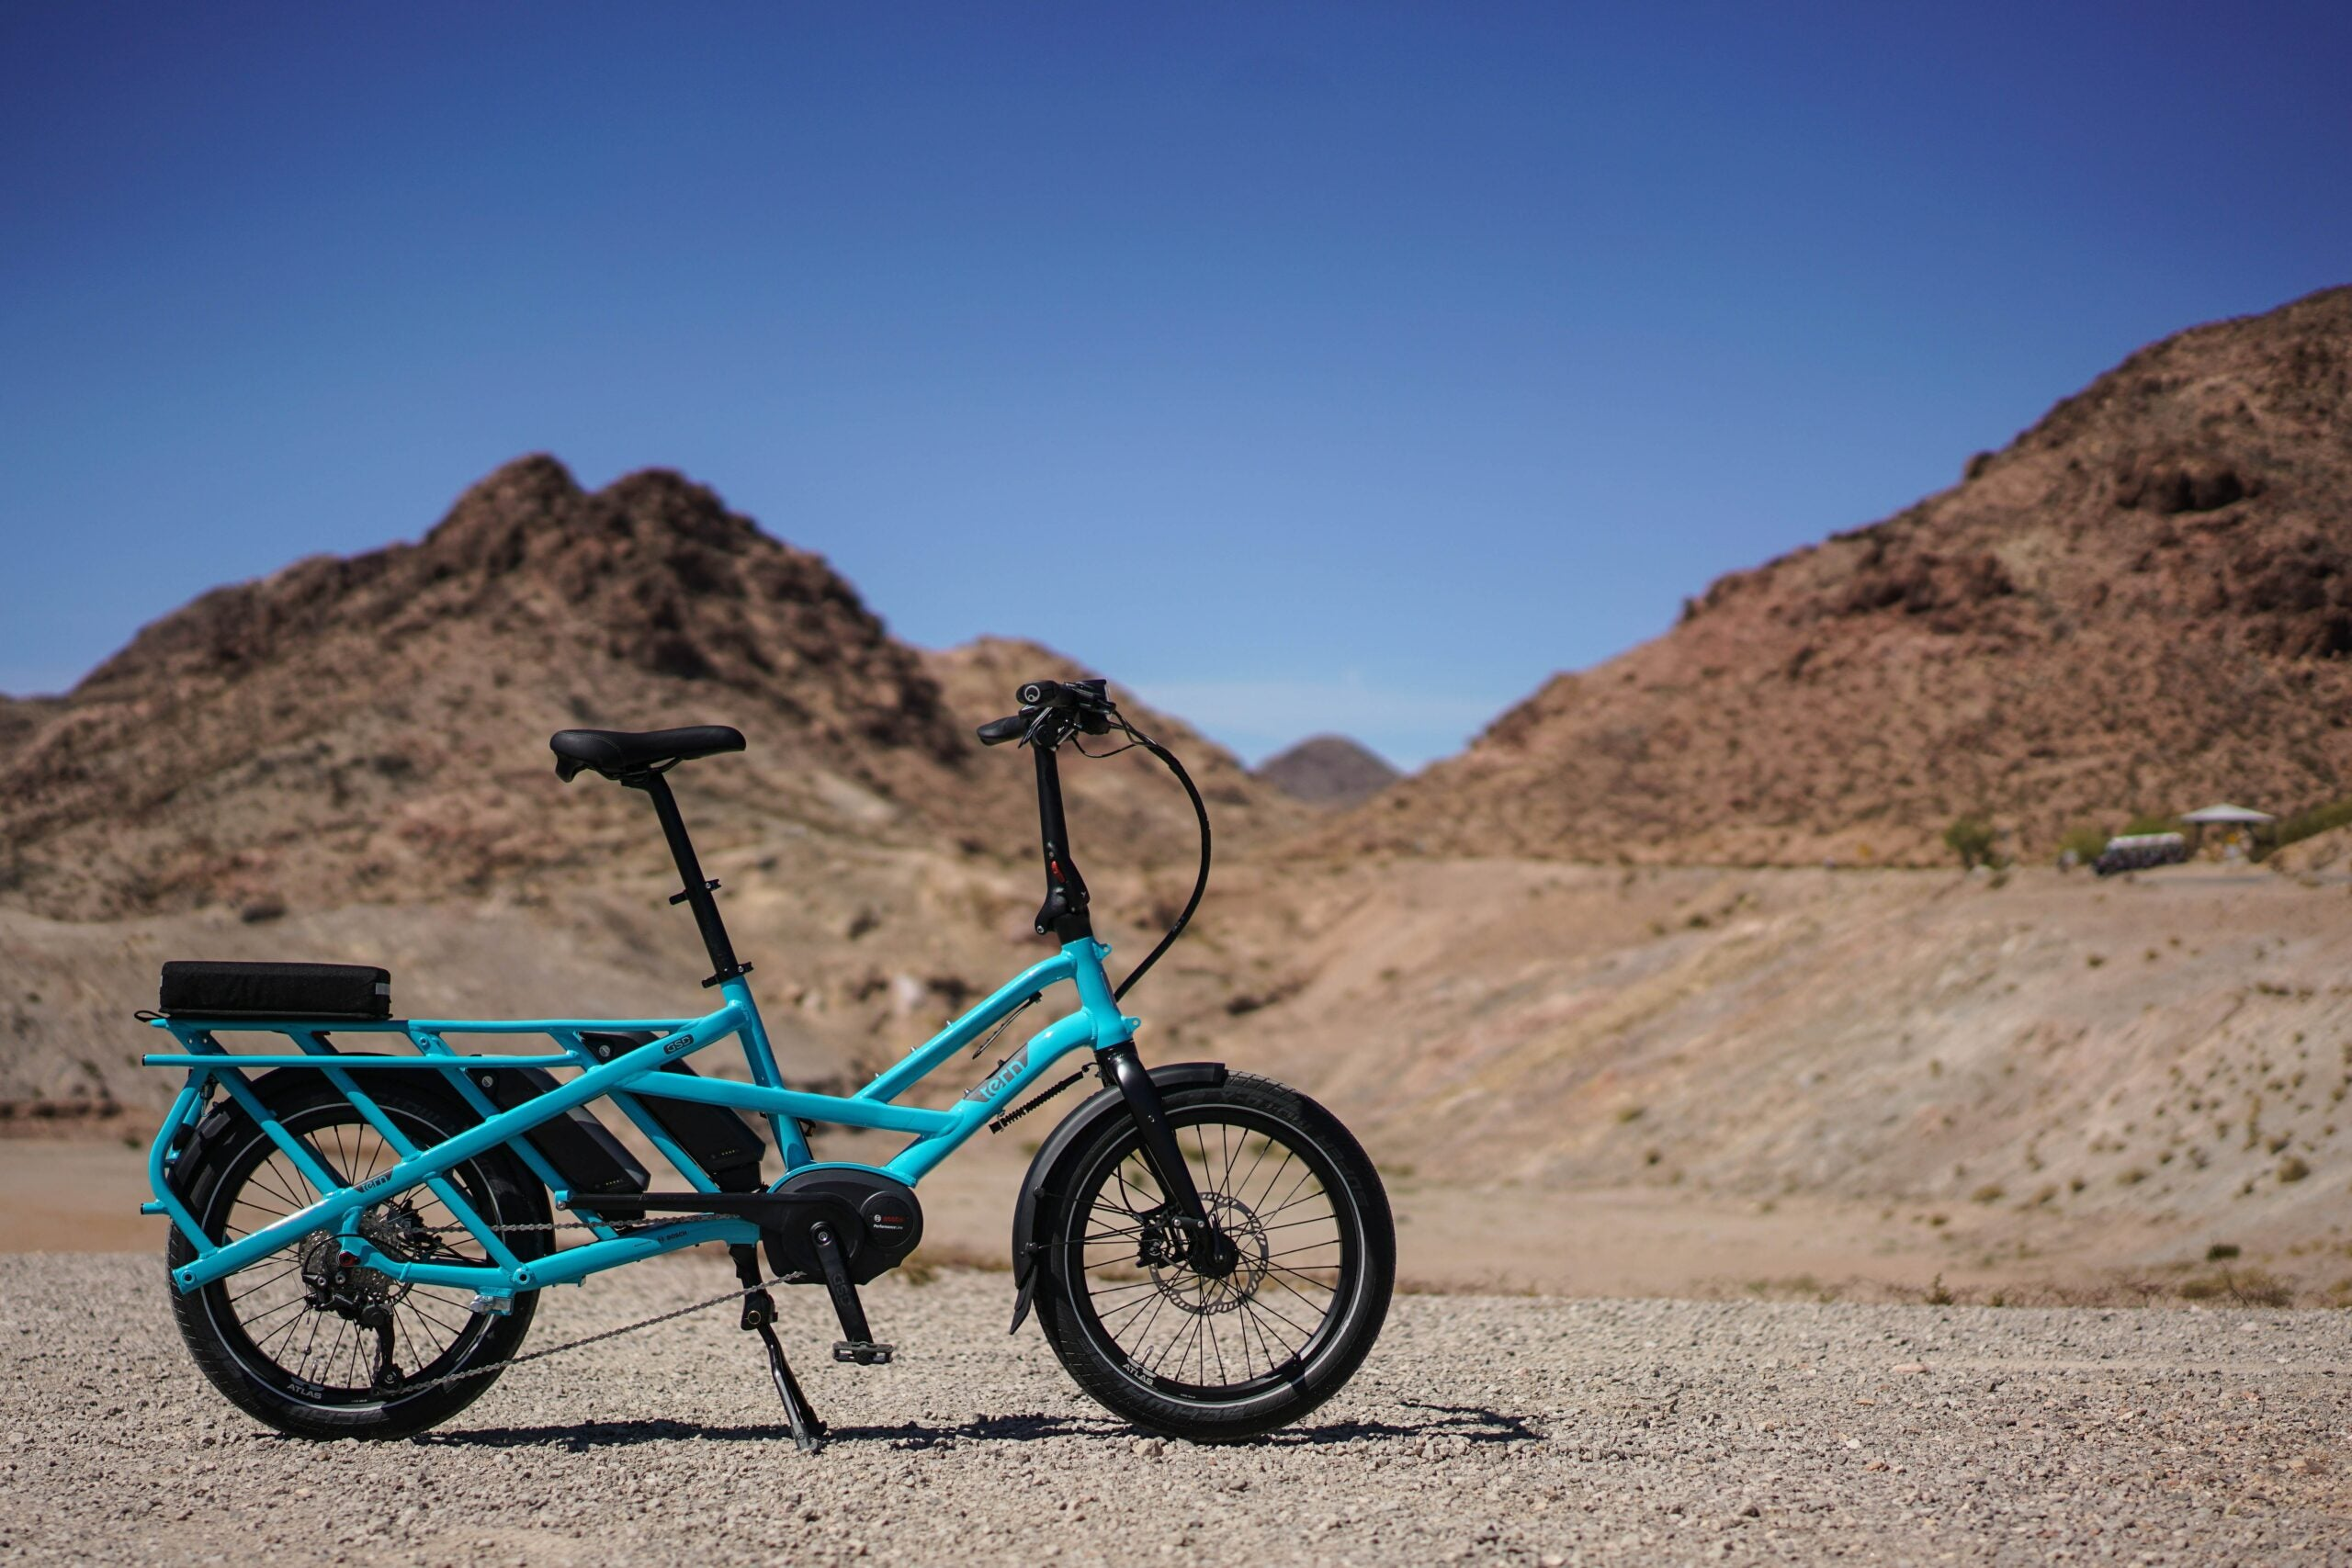 A motorized bike on a desert landscape